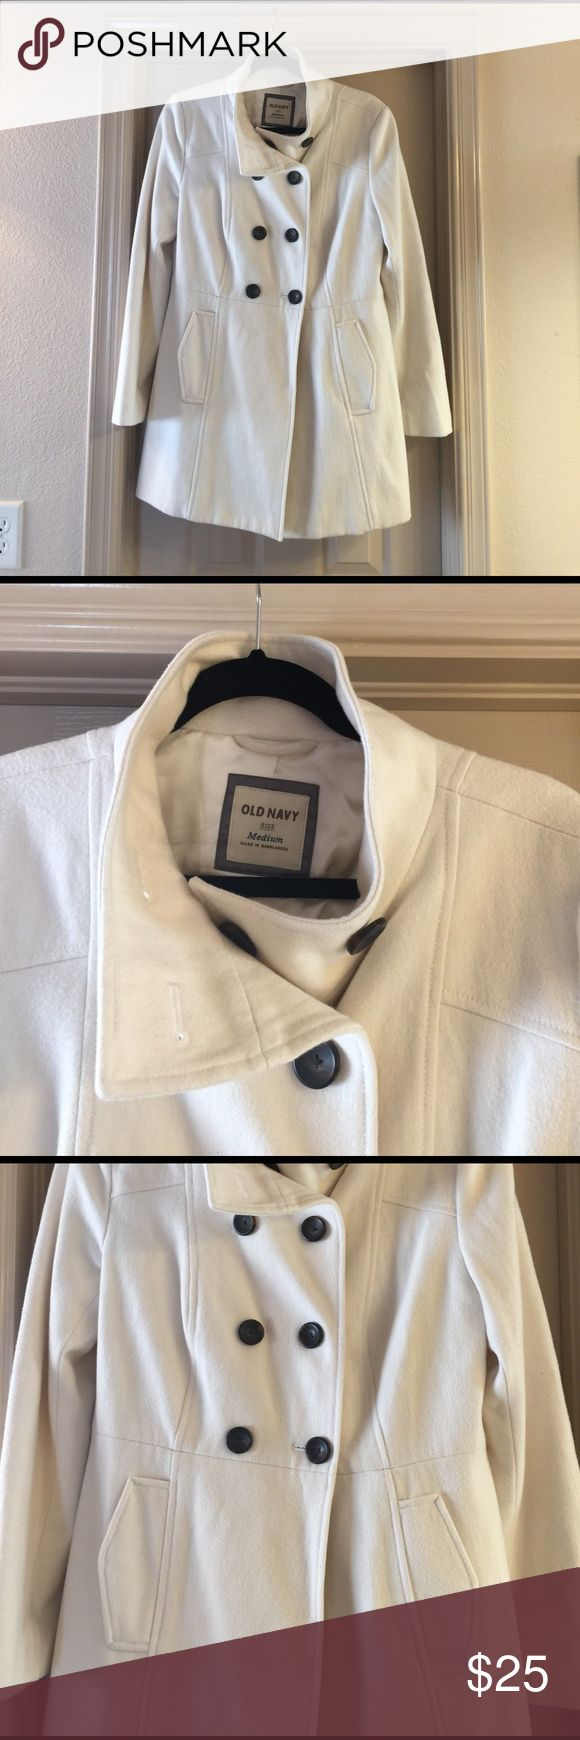 Old Navy Winters White Wool Pea Coat!! Old Navy winter white wool pea coat. Has stand up collar with tortoise shell buttons. Worn only a hand full of times and has no stains!! Old Navy Jackets & Coats Pea Coats